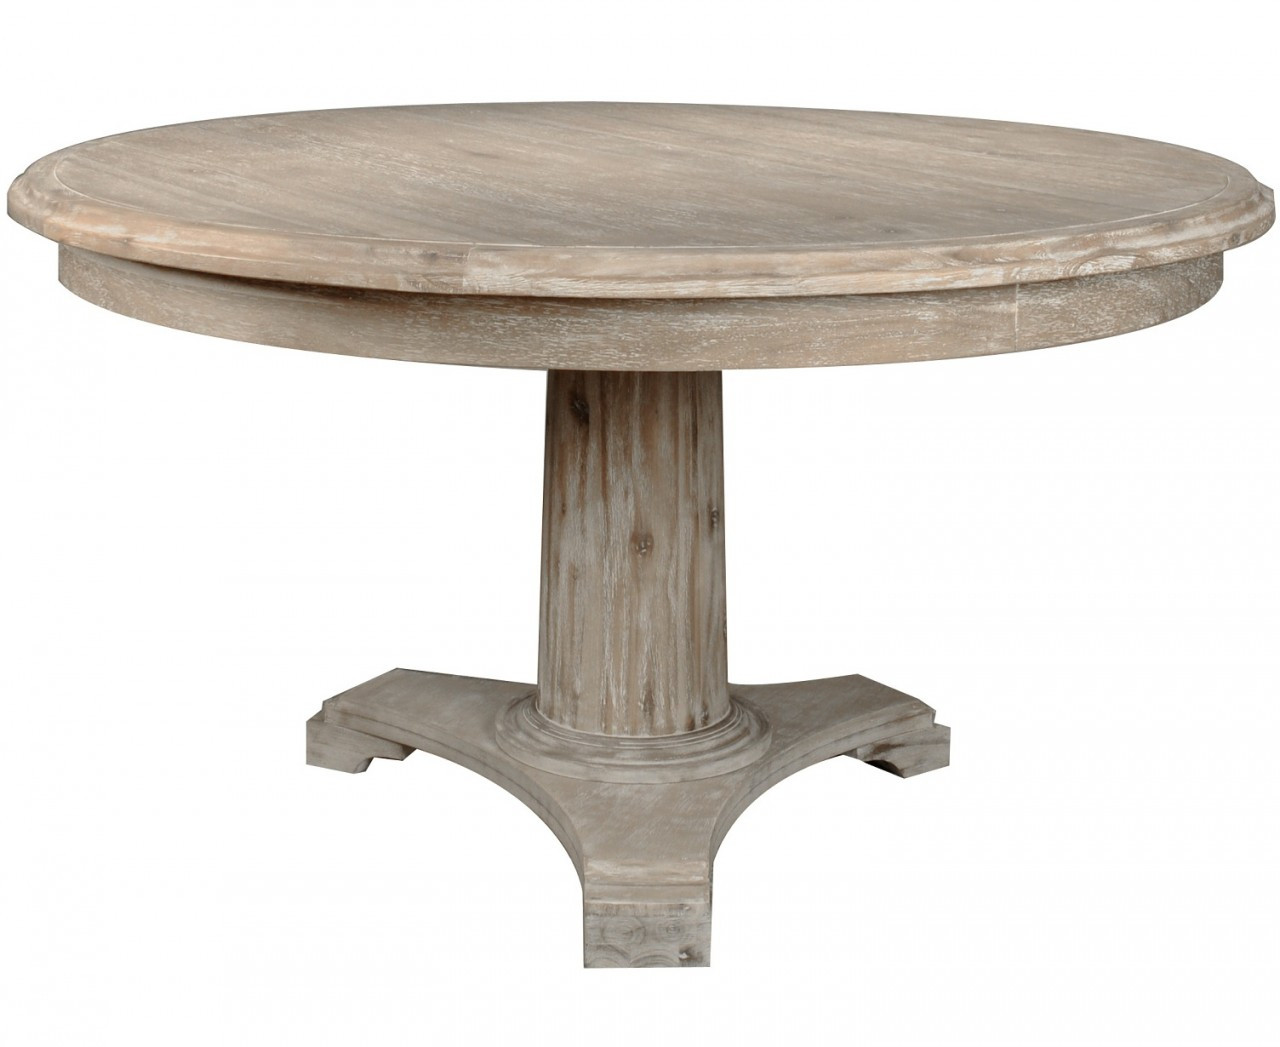 Round Dining Table 54 Round Column Pedestal Base Tables Zin Home